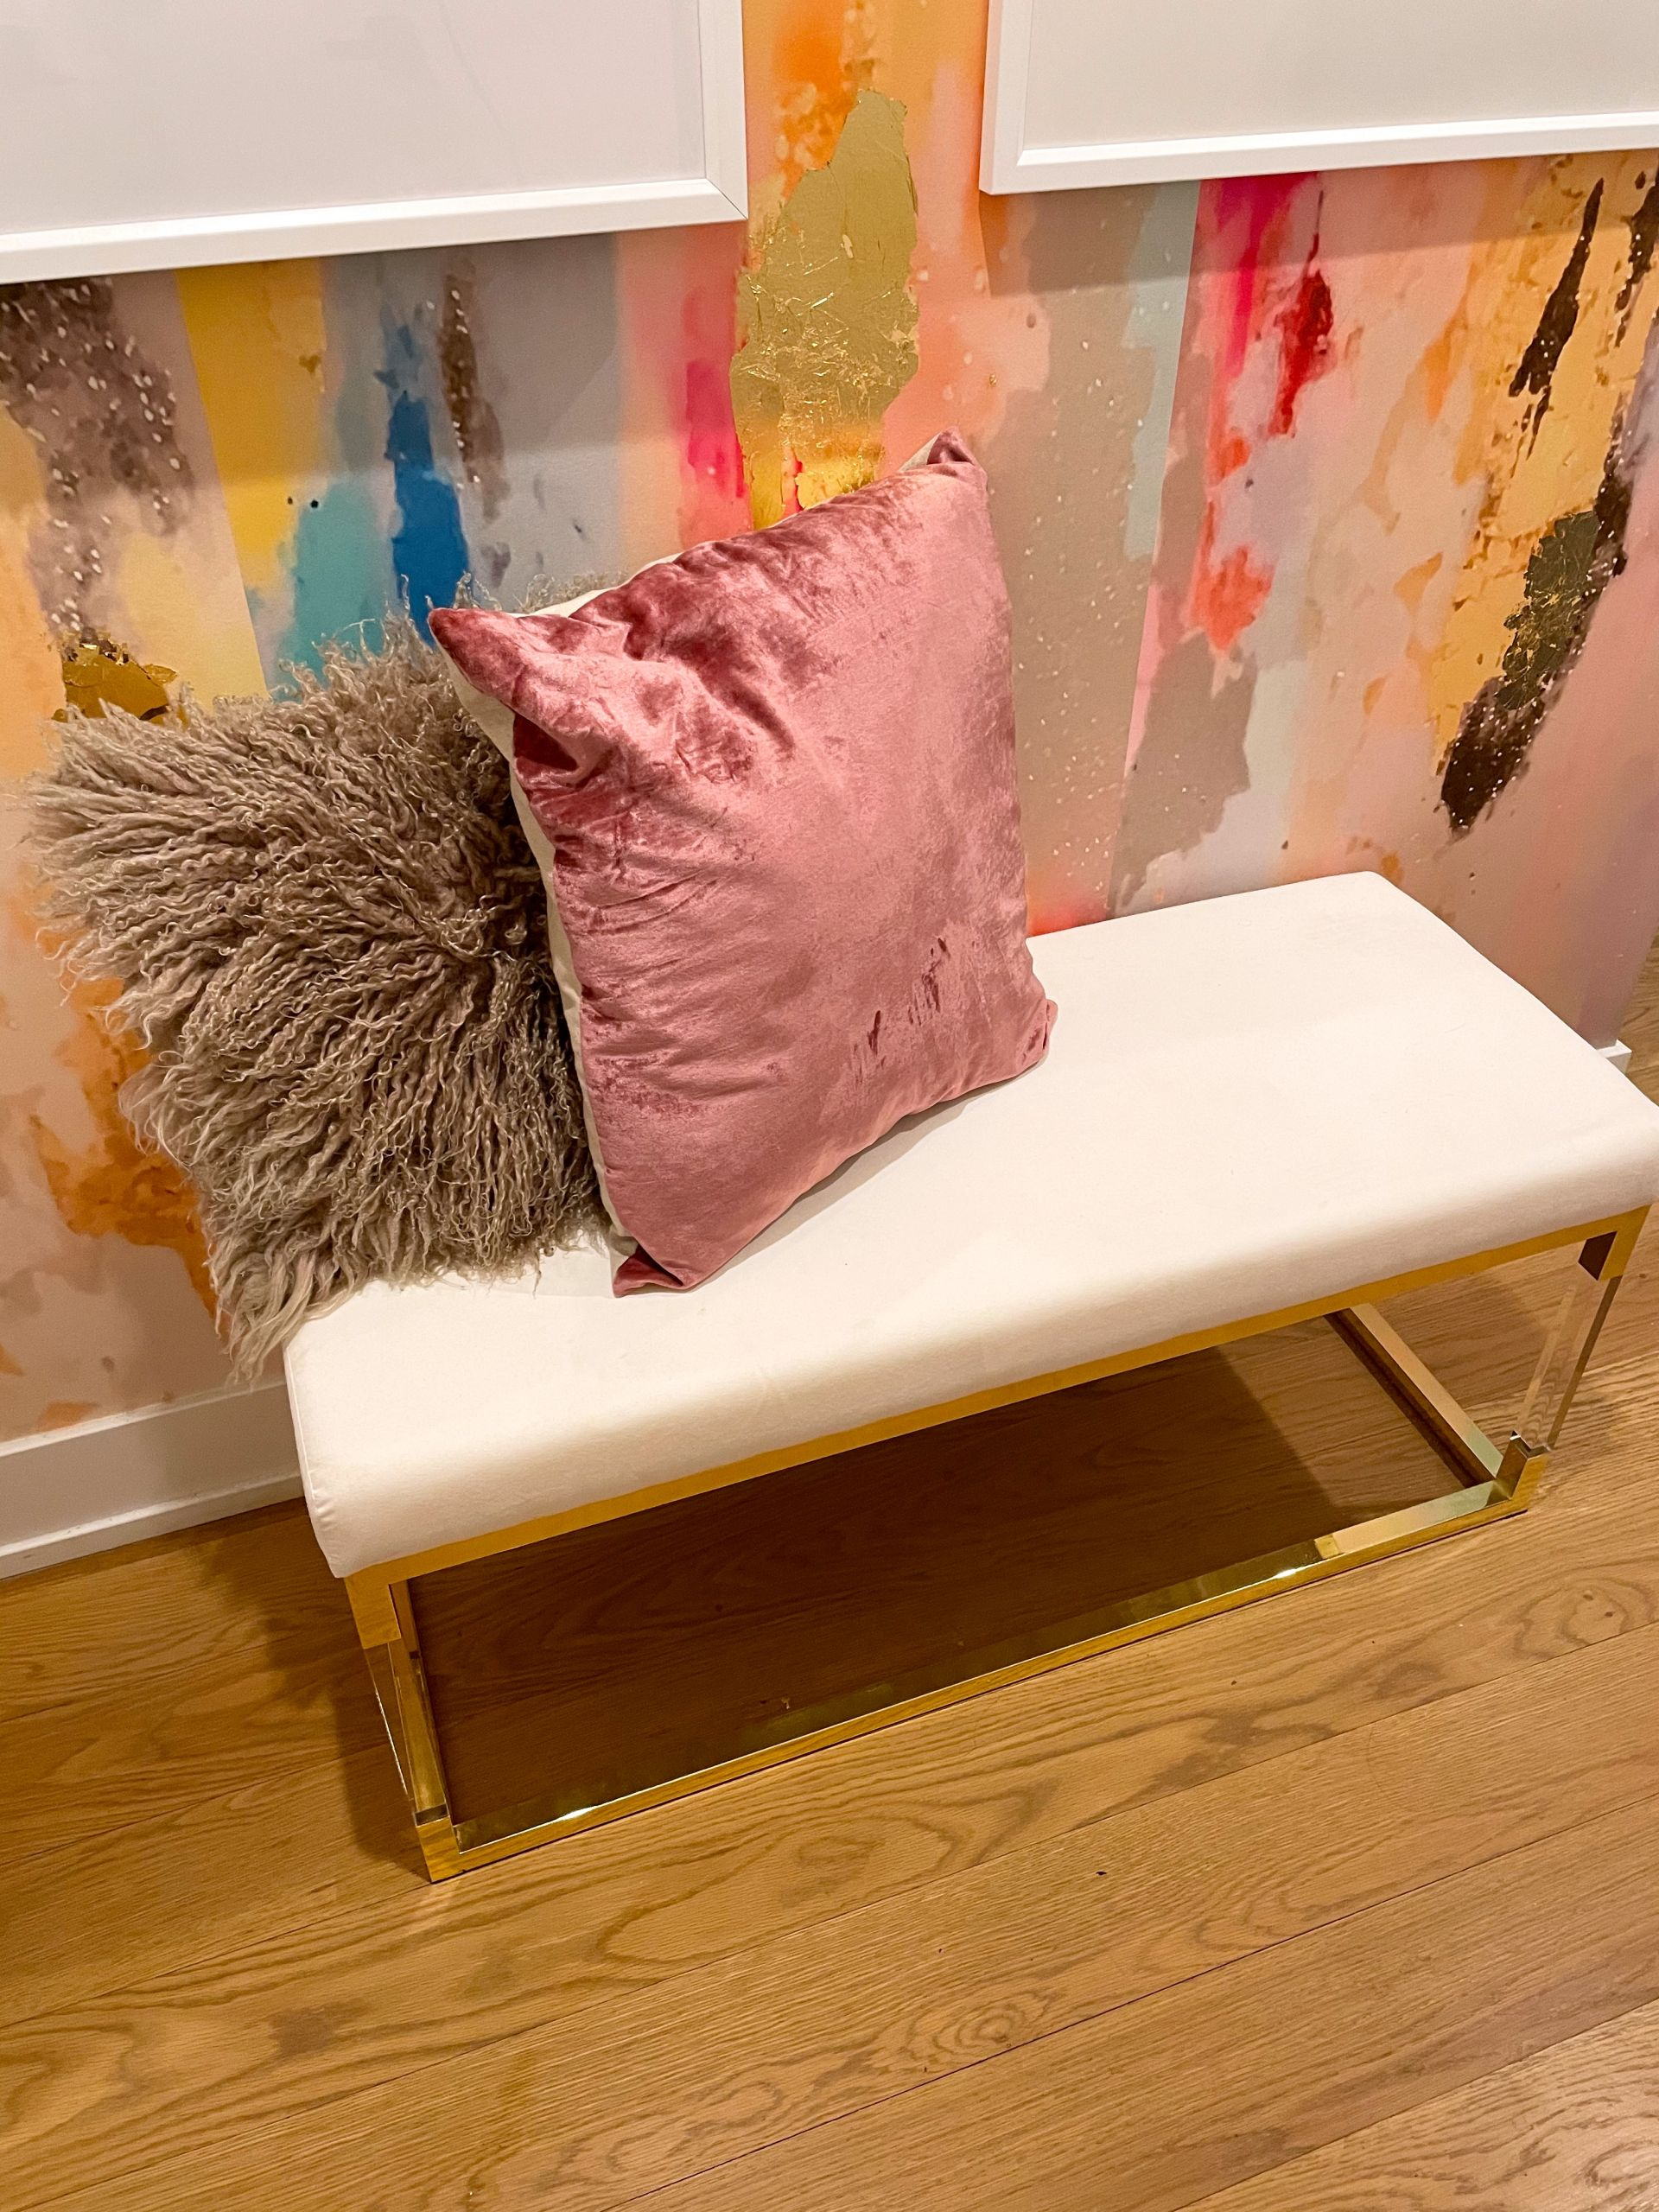 entrywaystyling,entryway decor, entryway inspiration, entrywaybench, how to style an entryway bench, gold foil wallpaper, peel and stick wallpaper, wallpaper inspiration, glam interior design, glam home design, girly home design, pink and gold entryway, pink and gold decor,VivianFerne Coronado Wall Mural, Entryway wallpaper inspiration, entryway wallpaper ideas, colorful entryway wallpaper